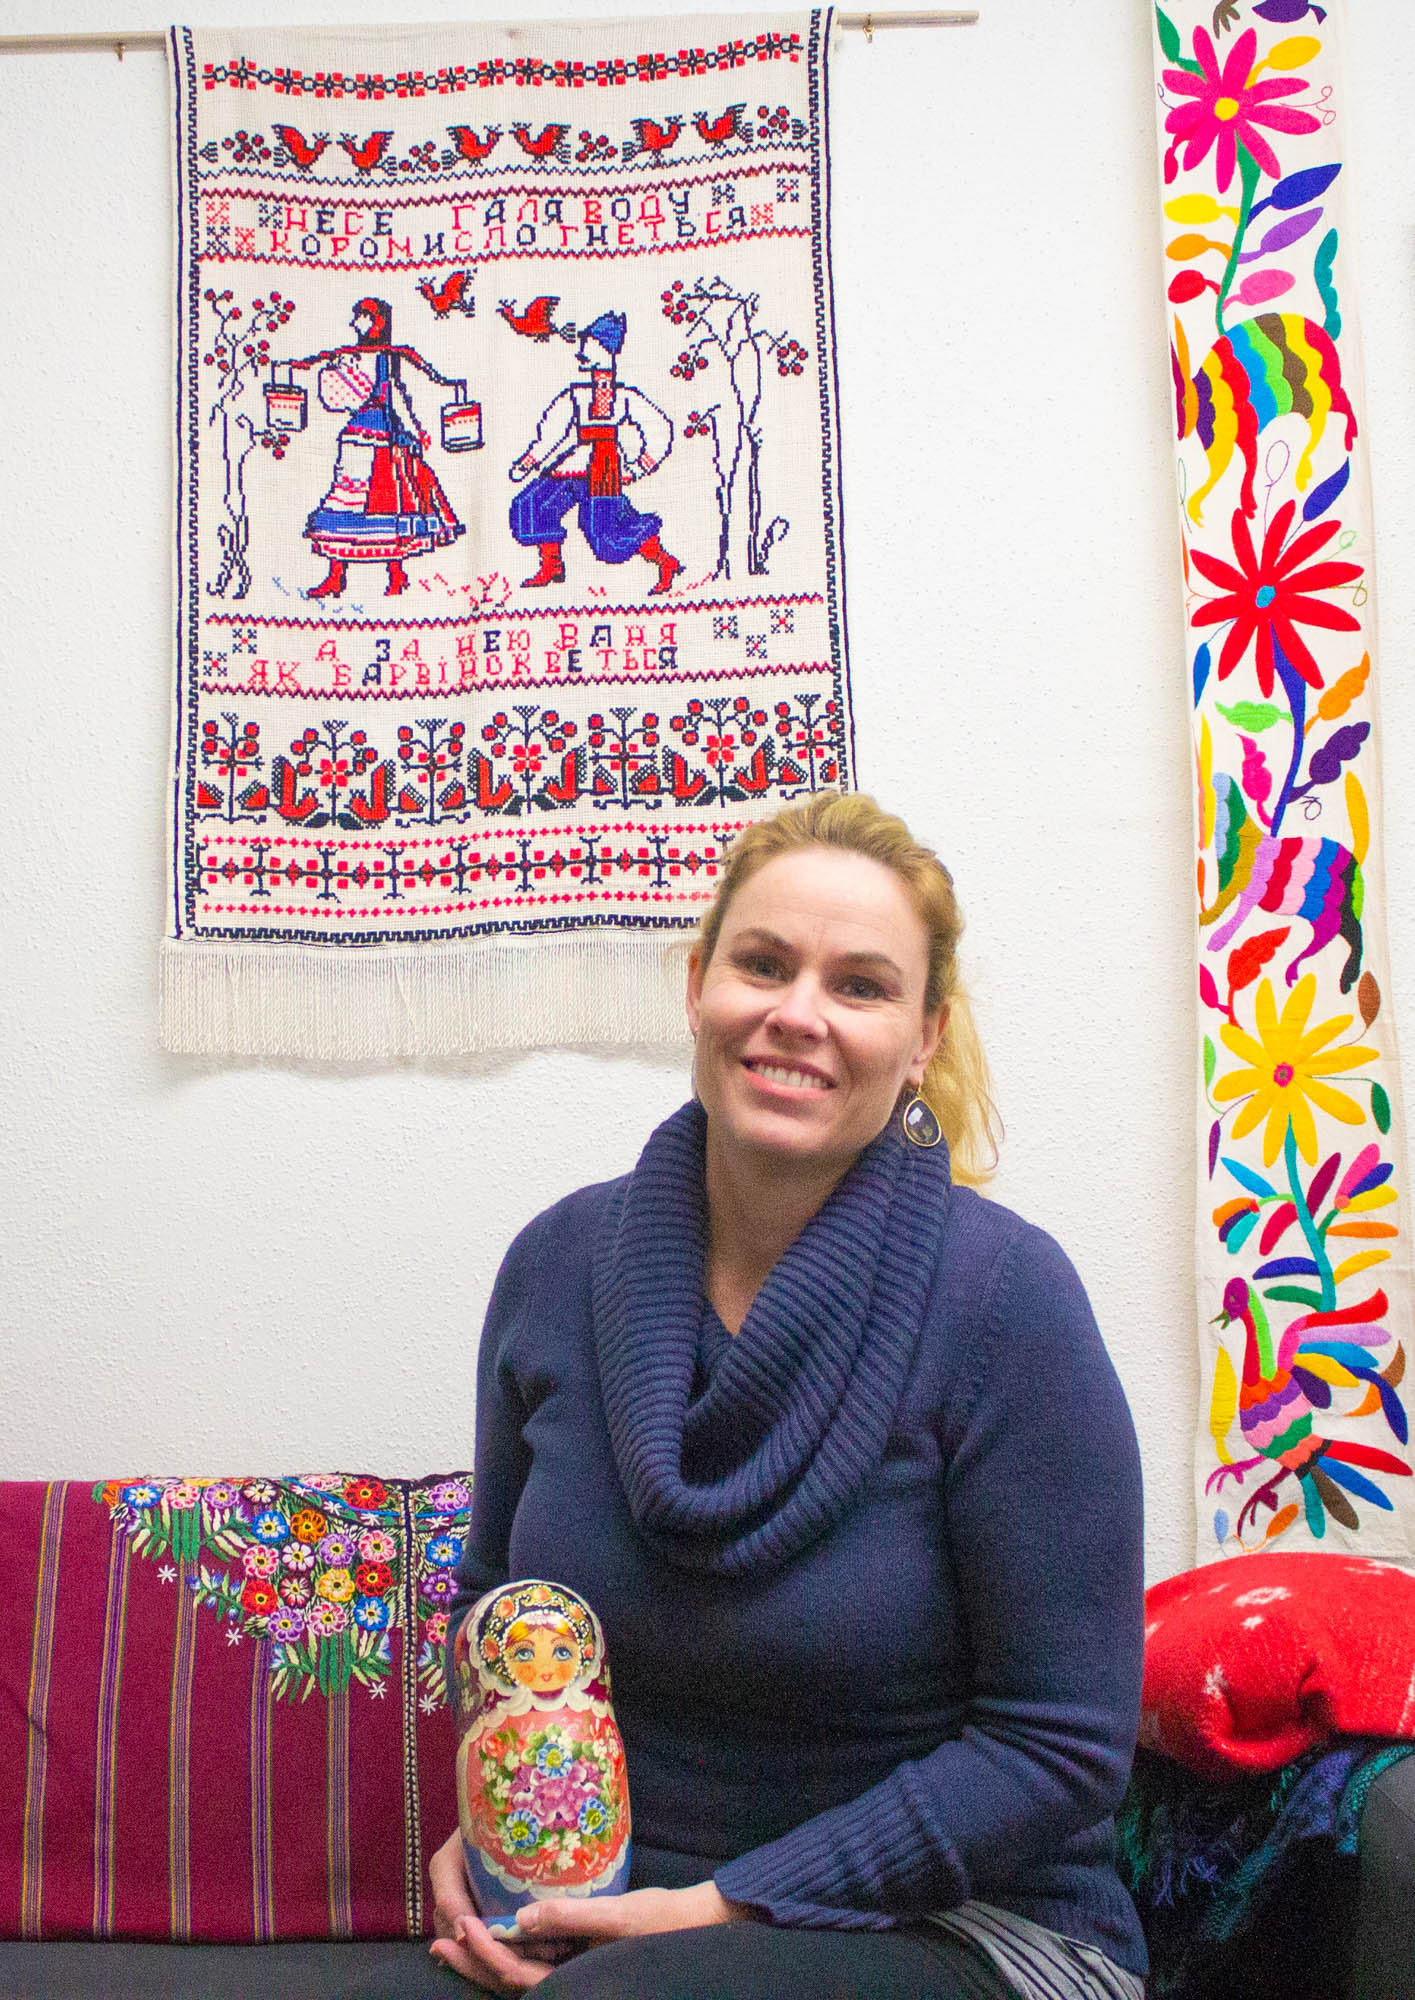 Finding culture through anthropology